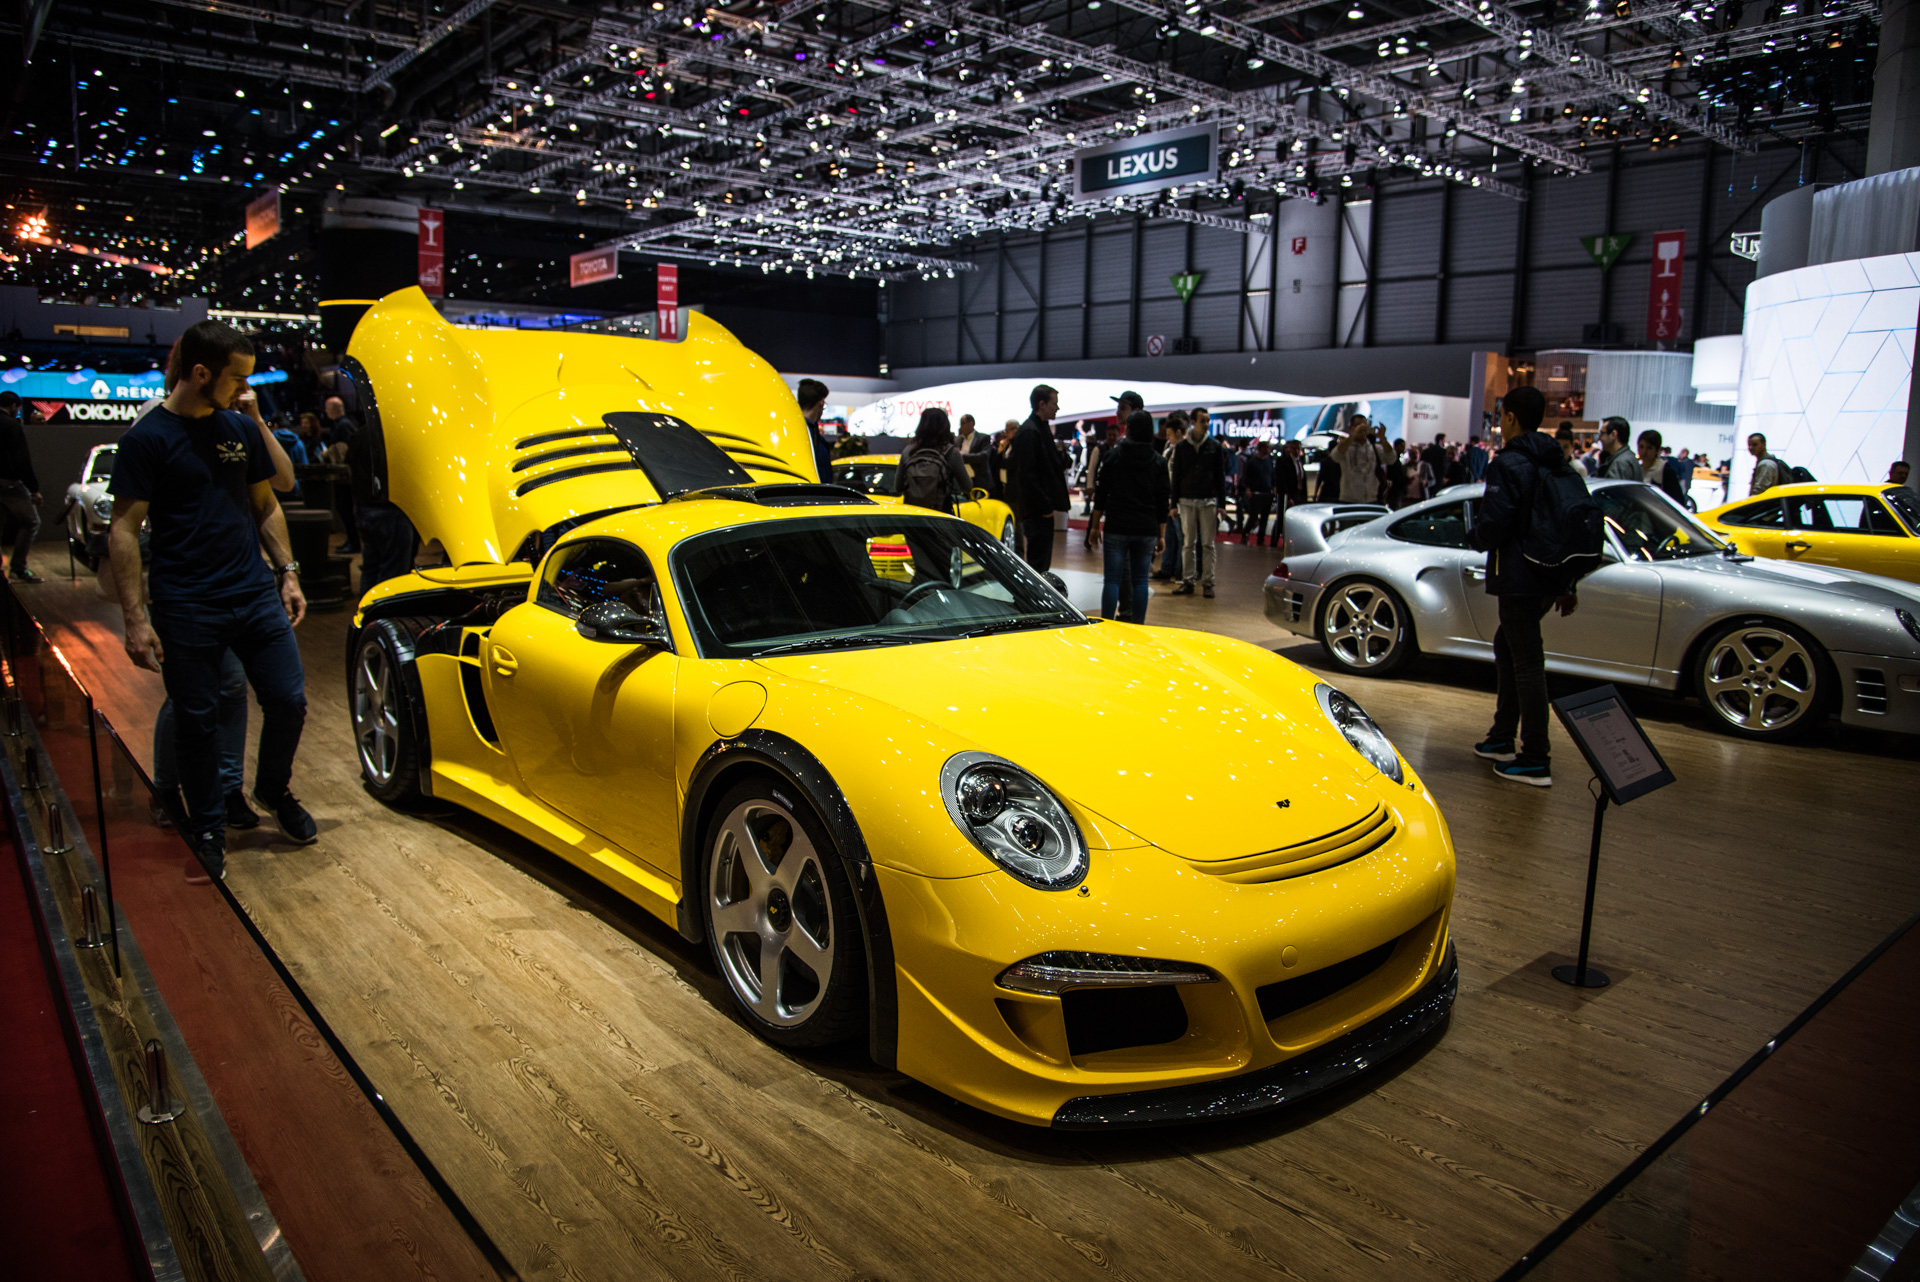 geneva-international-motor-show-igor-sinitsin-67